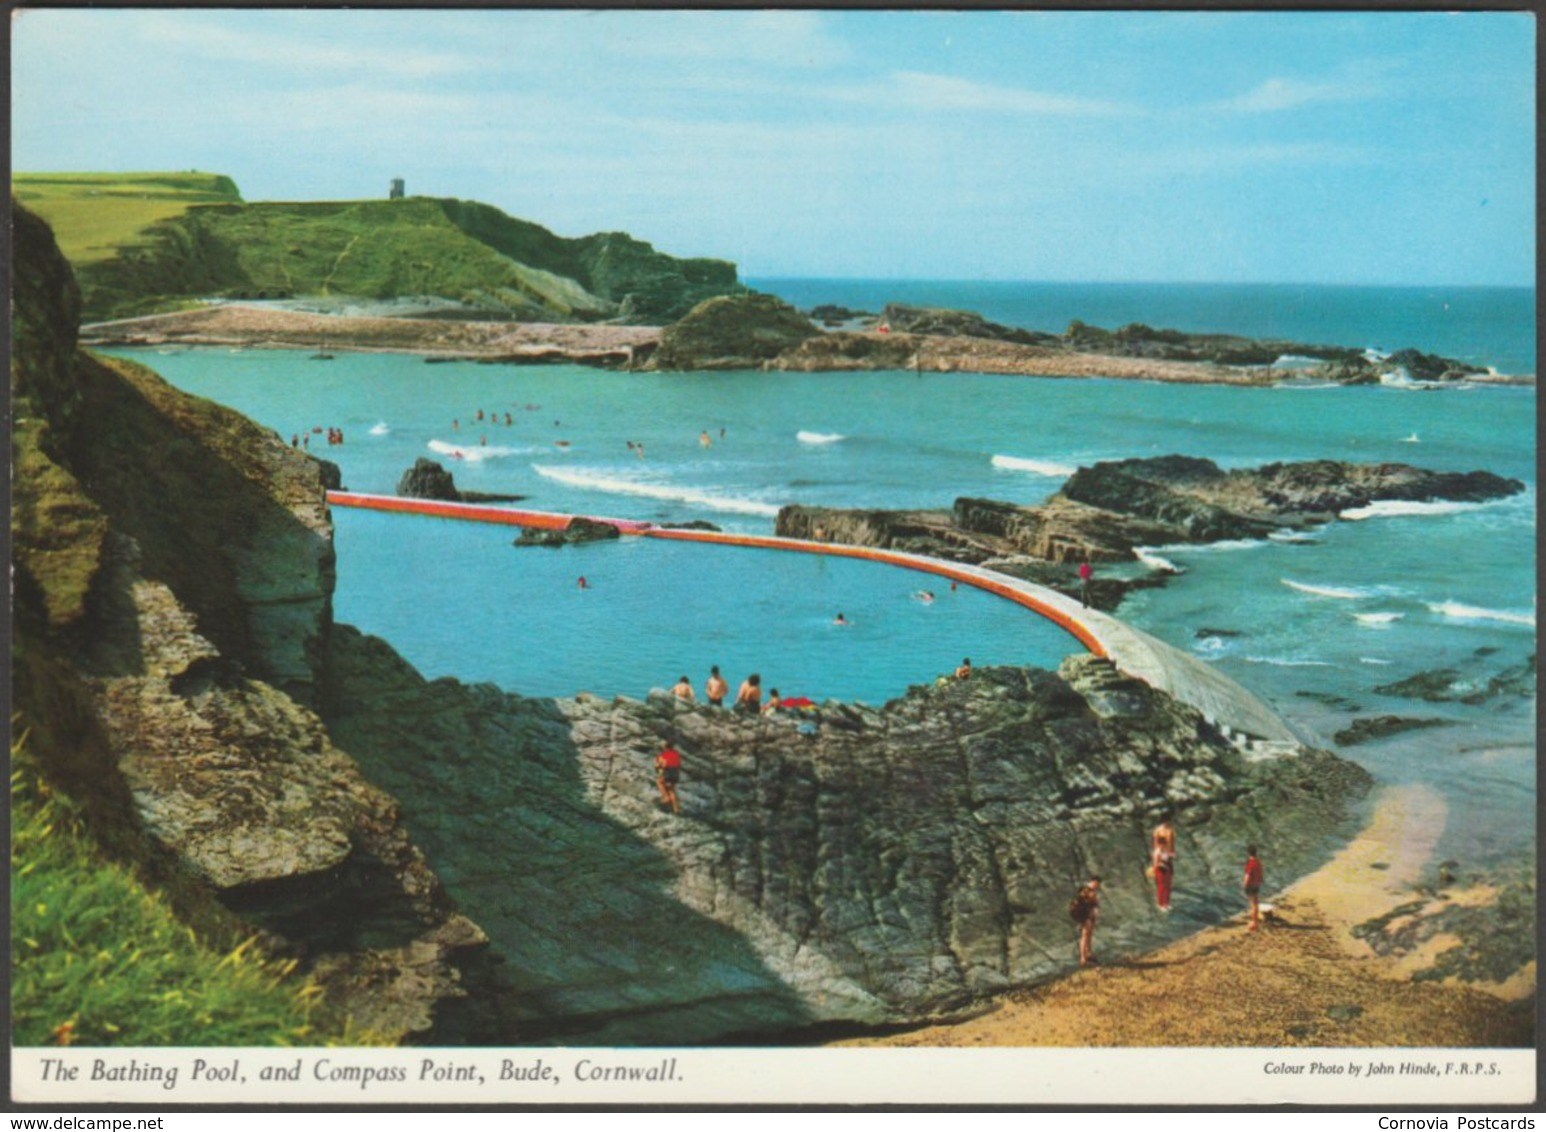 The Bathing Pool And Compass Point, Bude, Cornwall, C.1970s - John Hinde Postcard - England